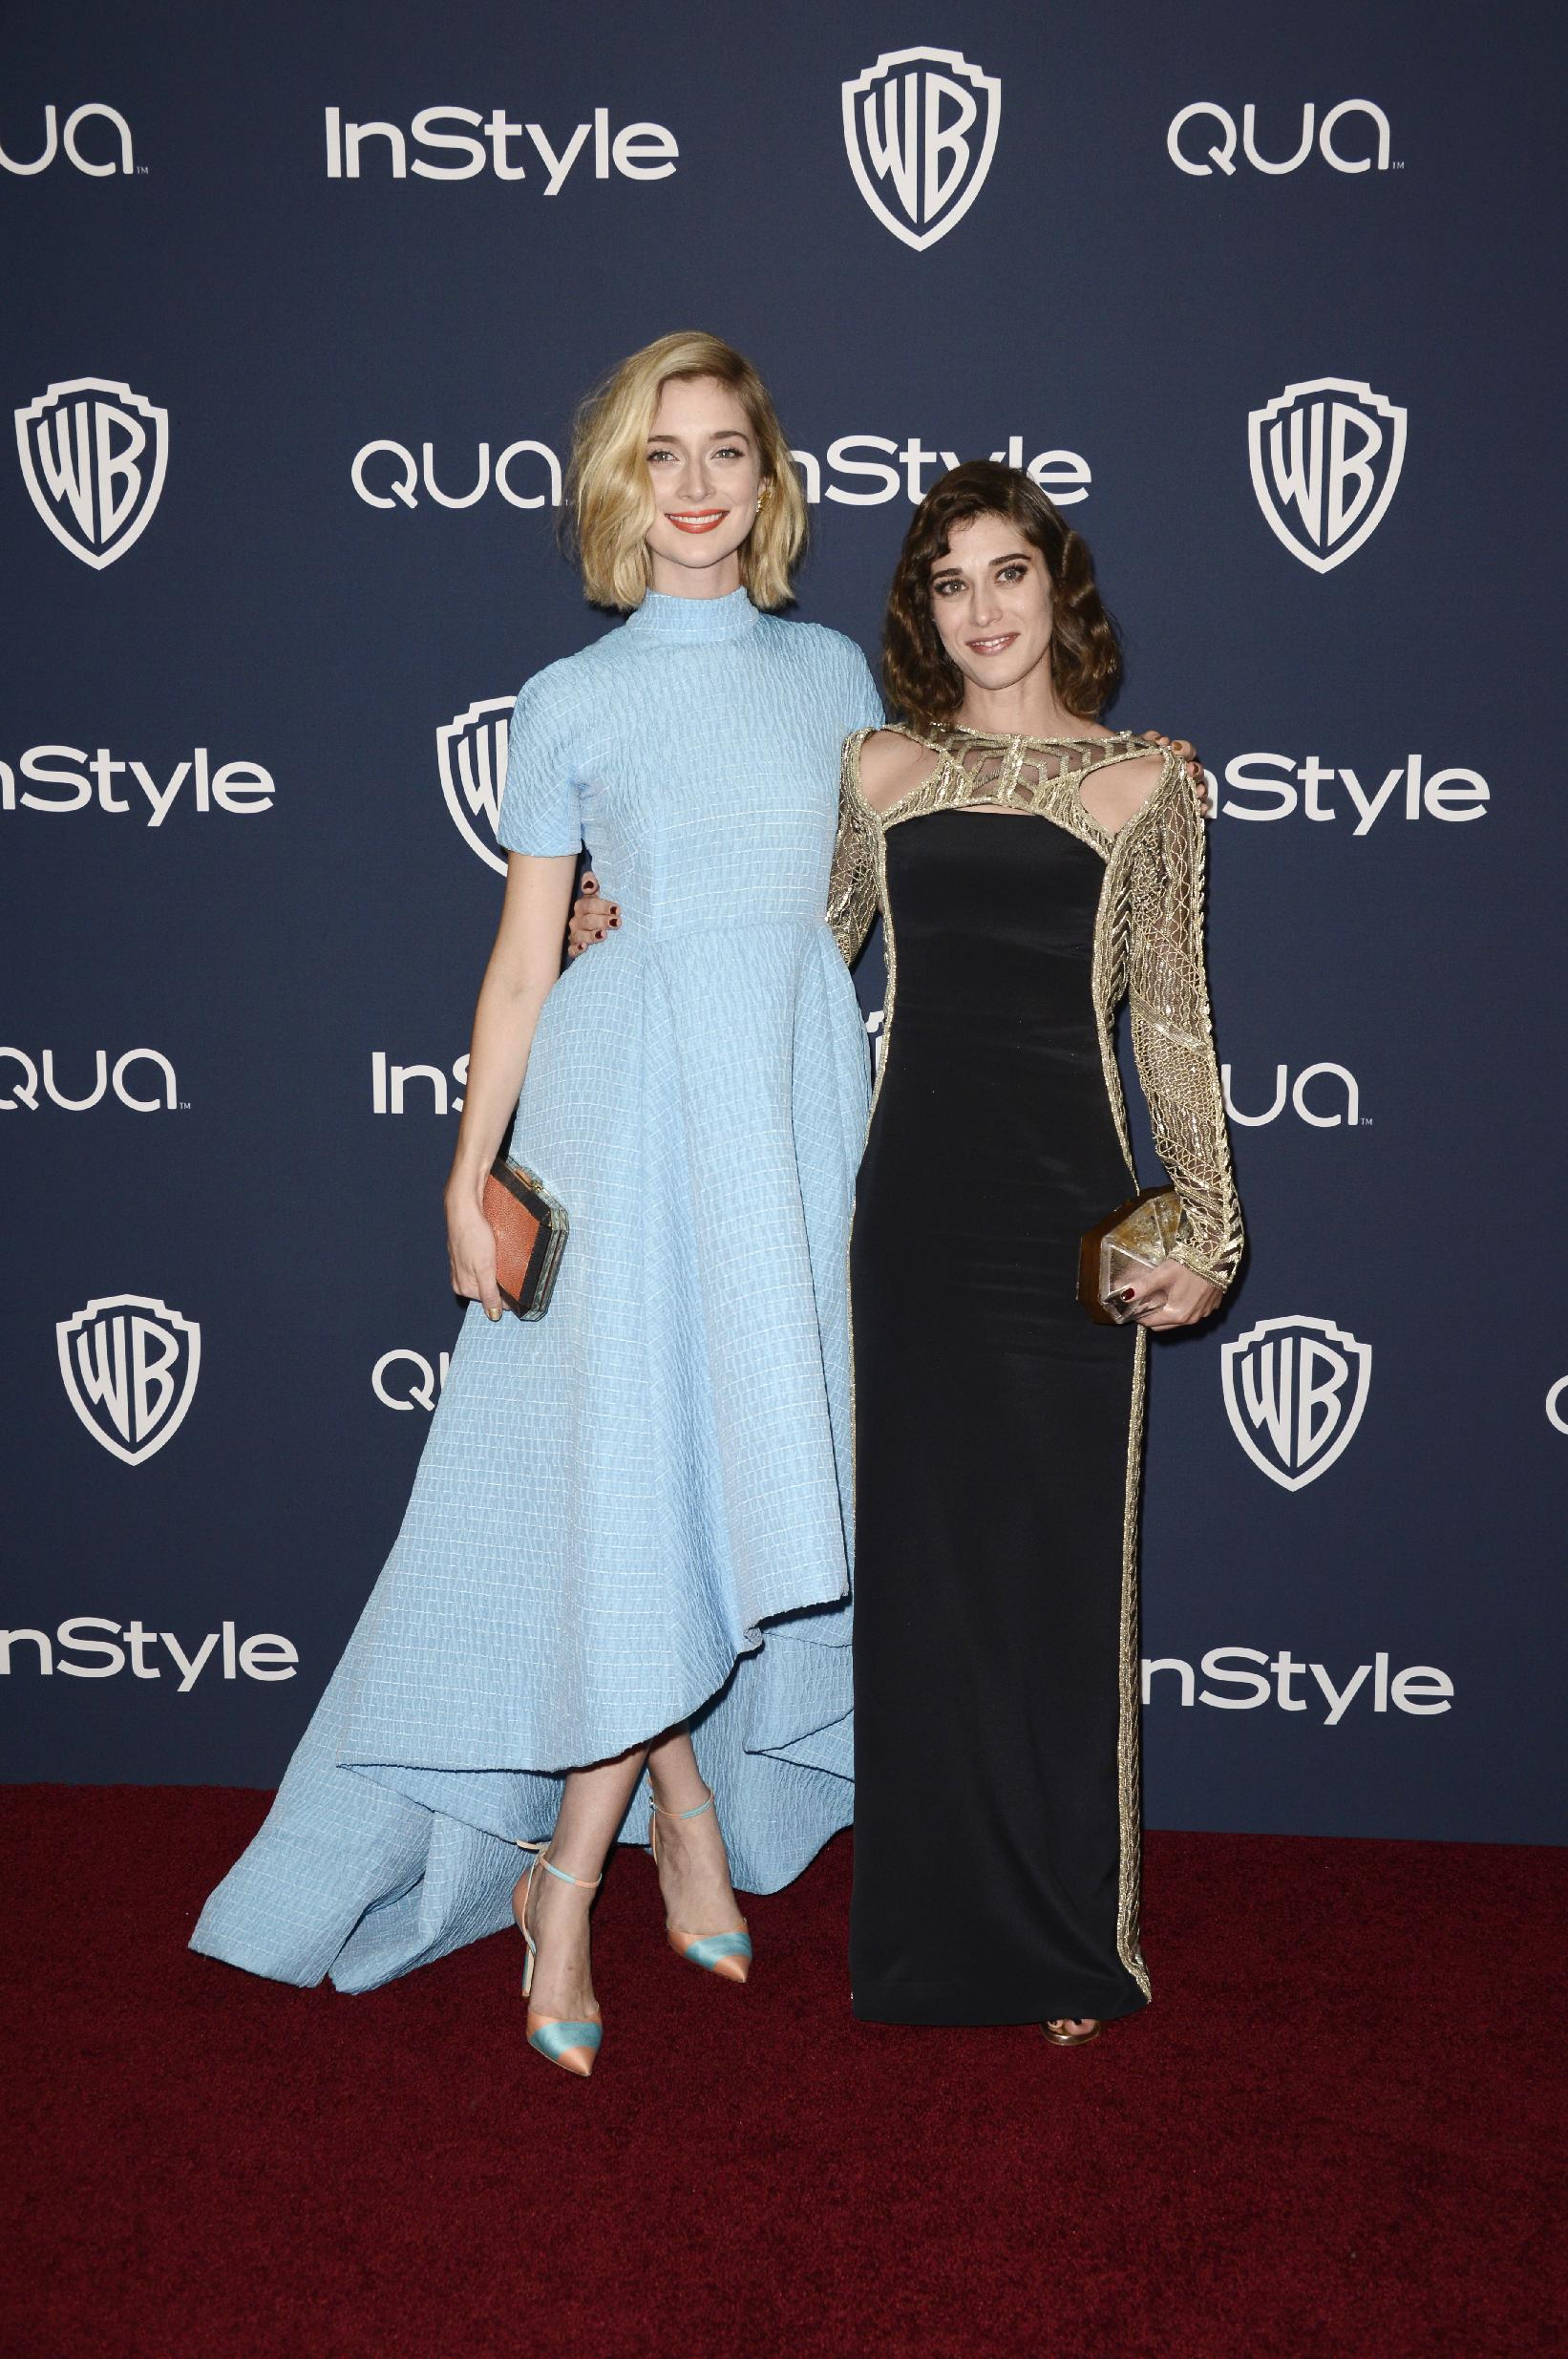 Caitlin Fitzgerald InStyle Warner Bros Golden Globes after party